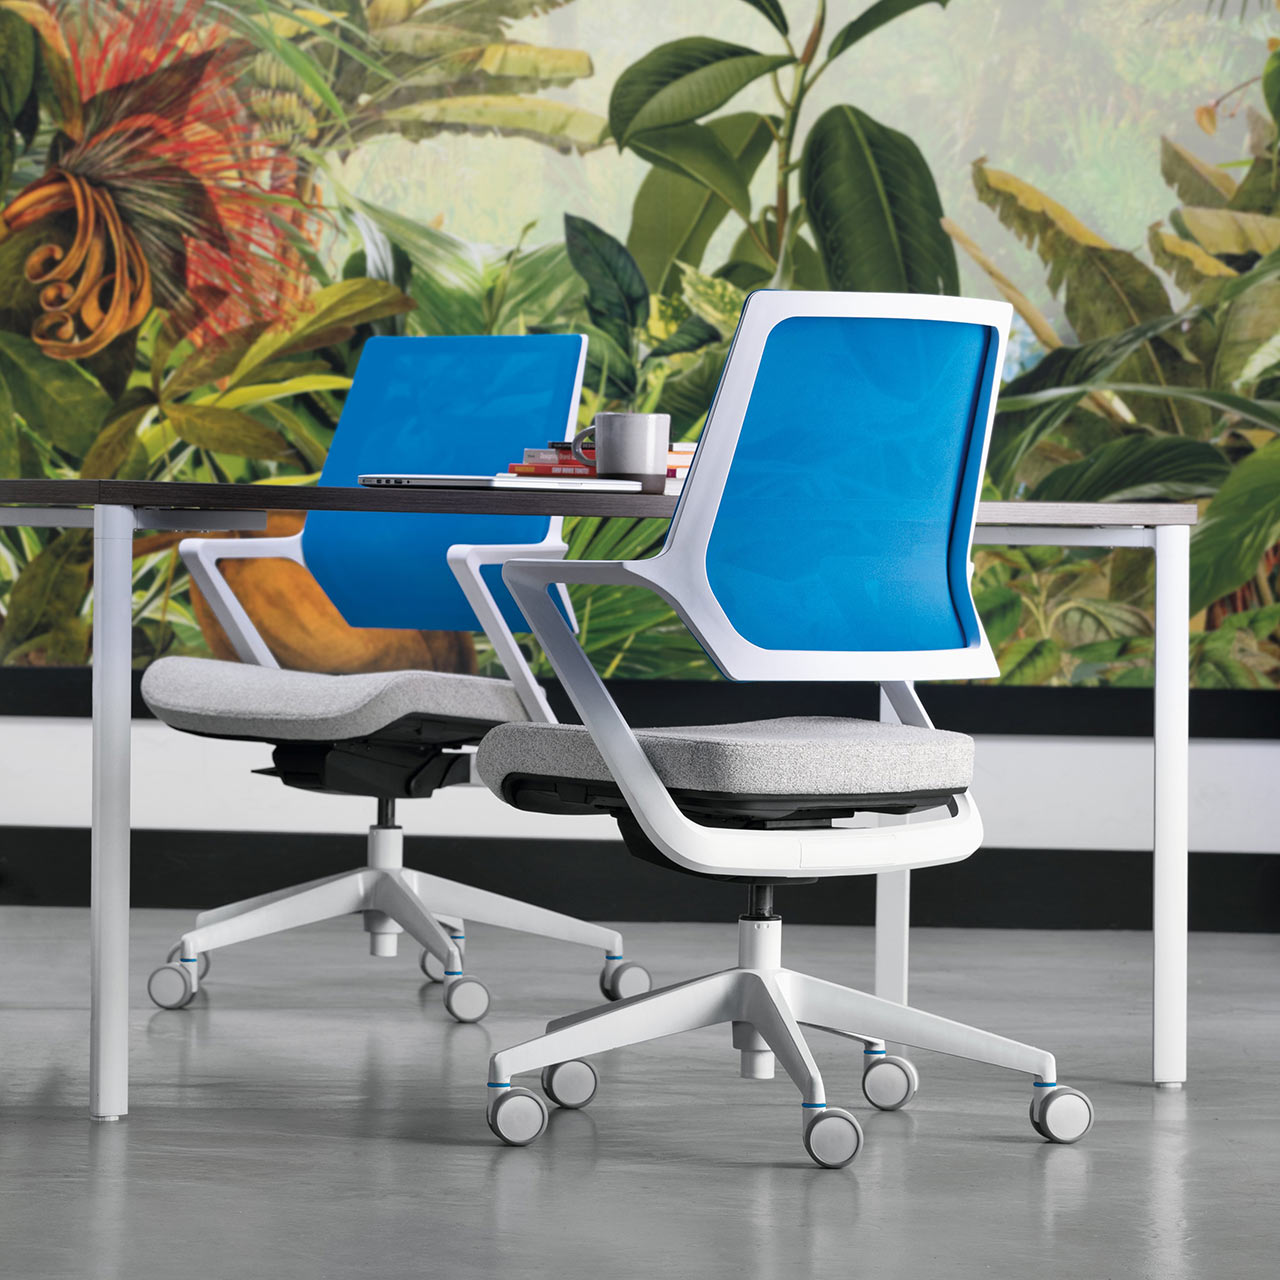 SitOnIt • Seating products represented by Stanczak & Associates